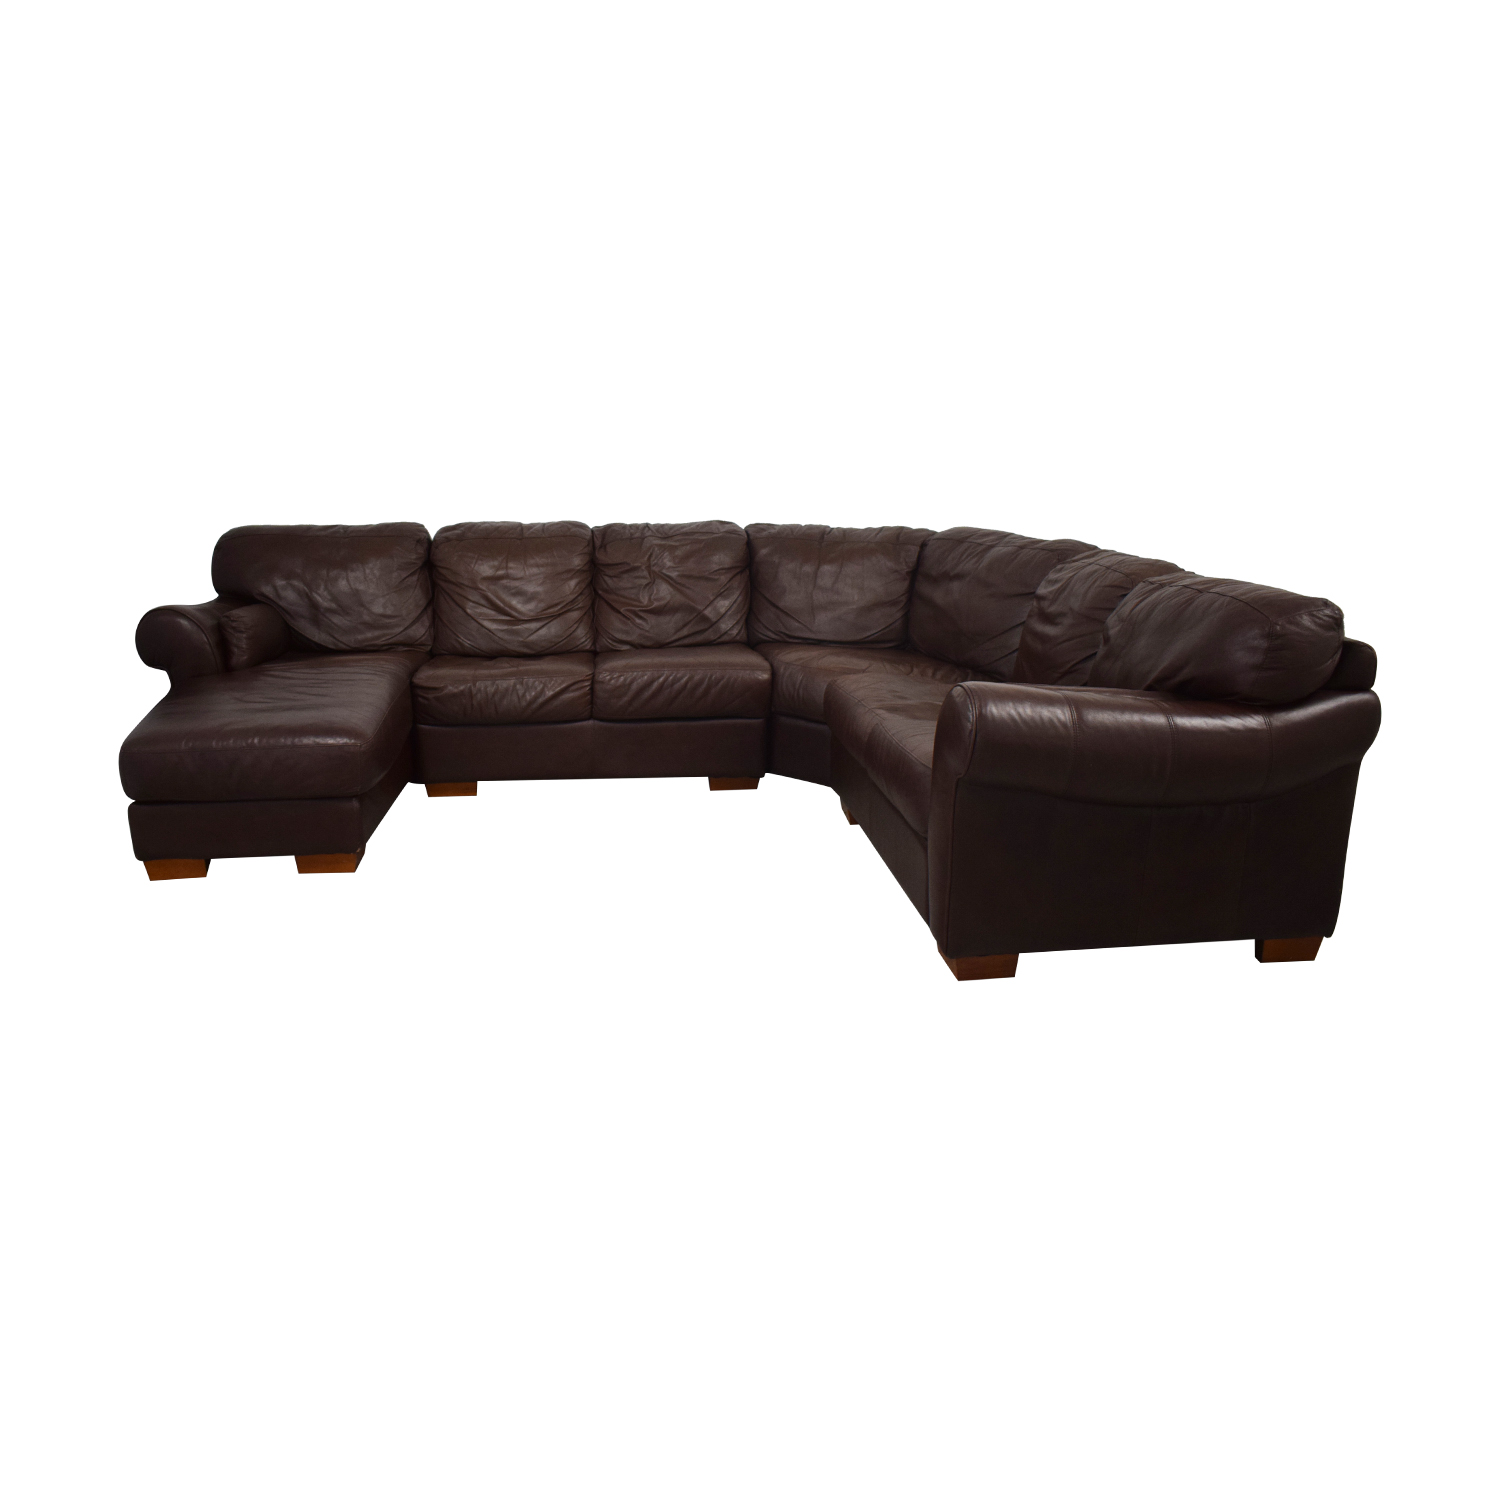 brown leather sectional sofa with chaise cover for cats best sectionals 1000 2000